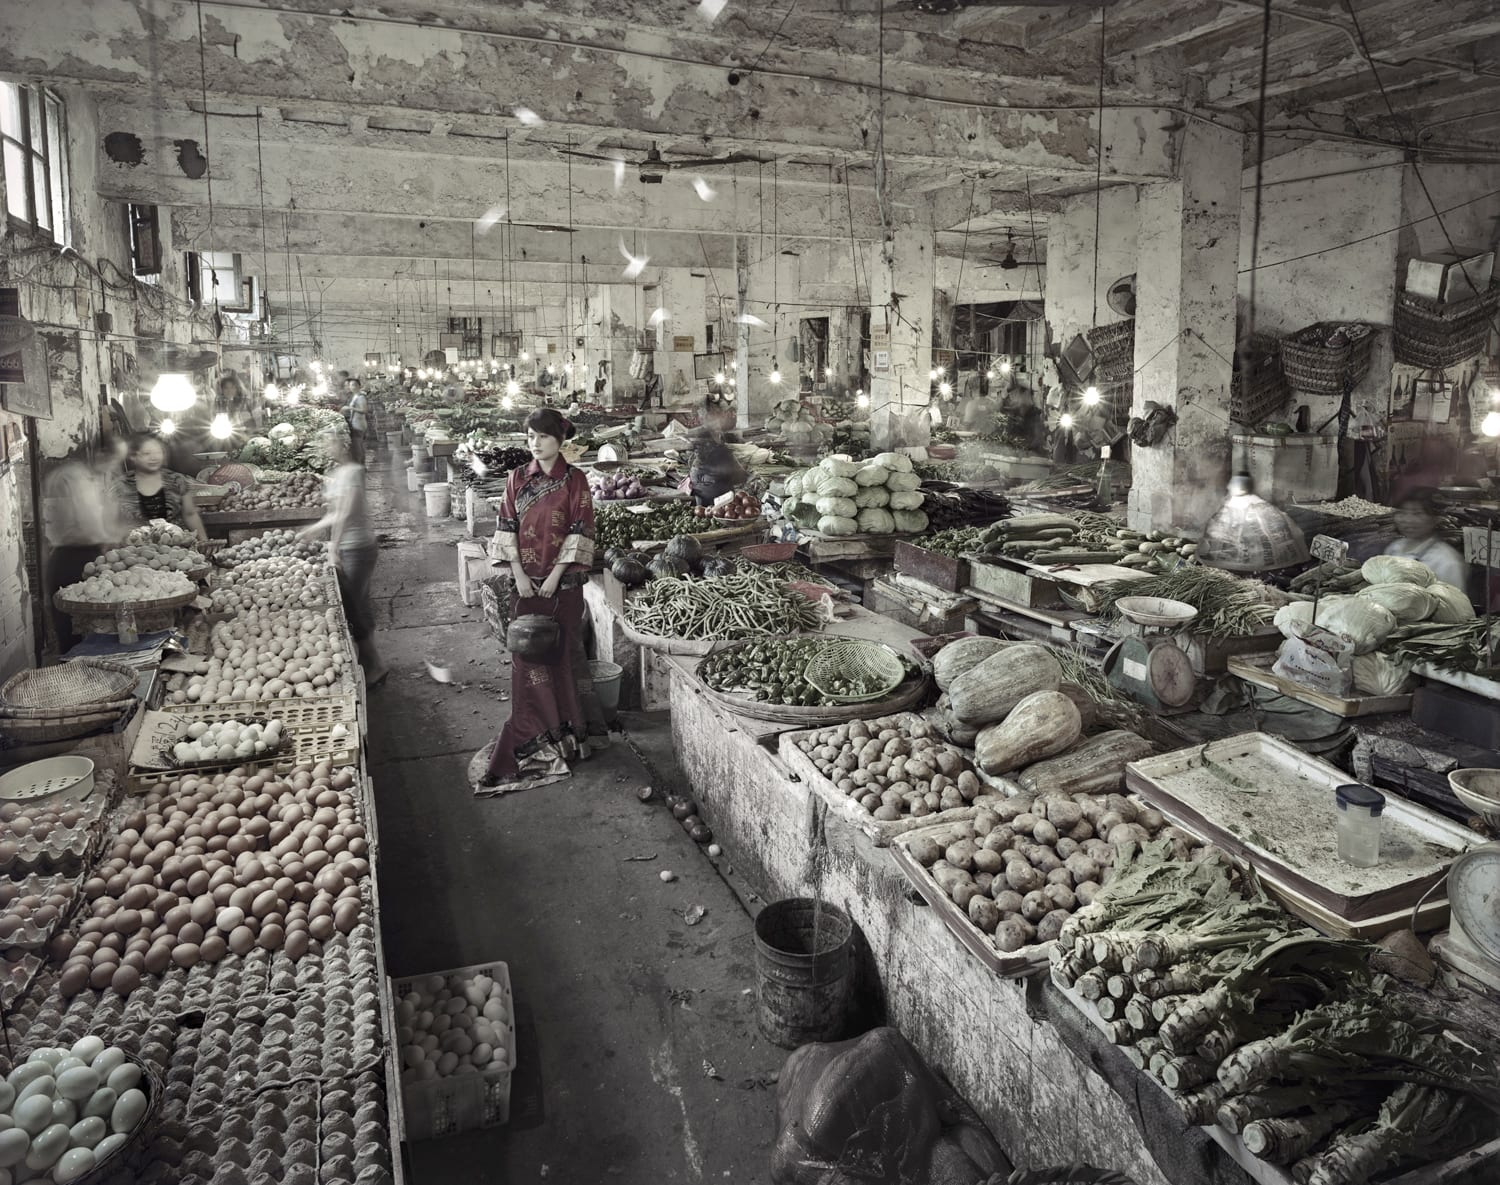 Qin Wen 秦文, Old City - Vegetable Market (No. 2) 故城系列之菜市場, 2009